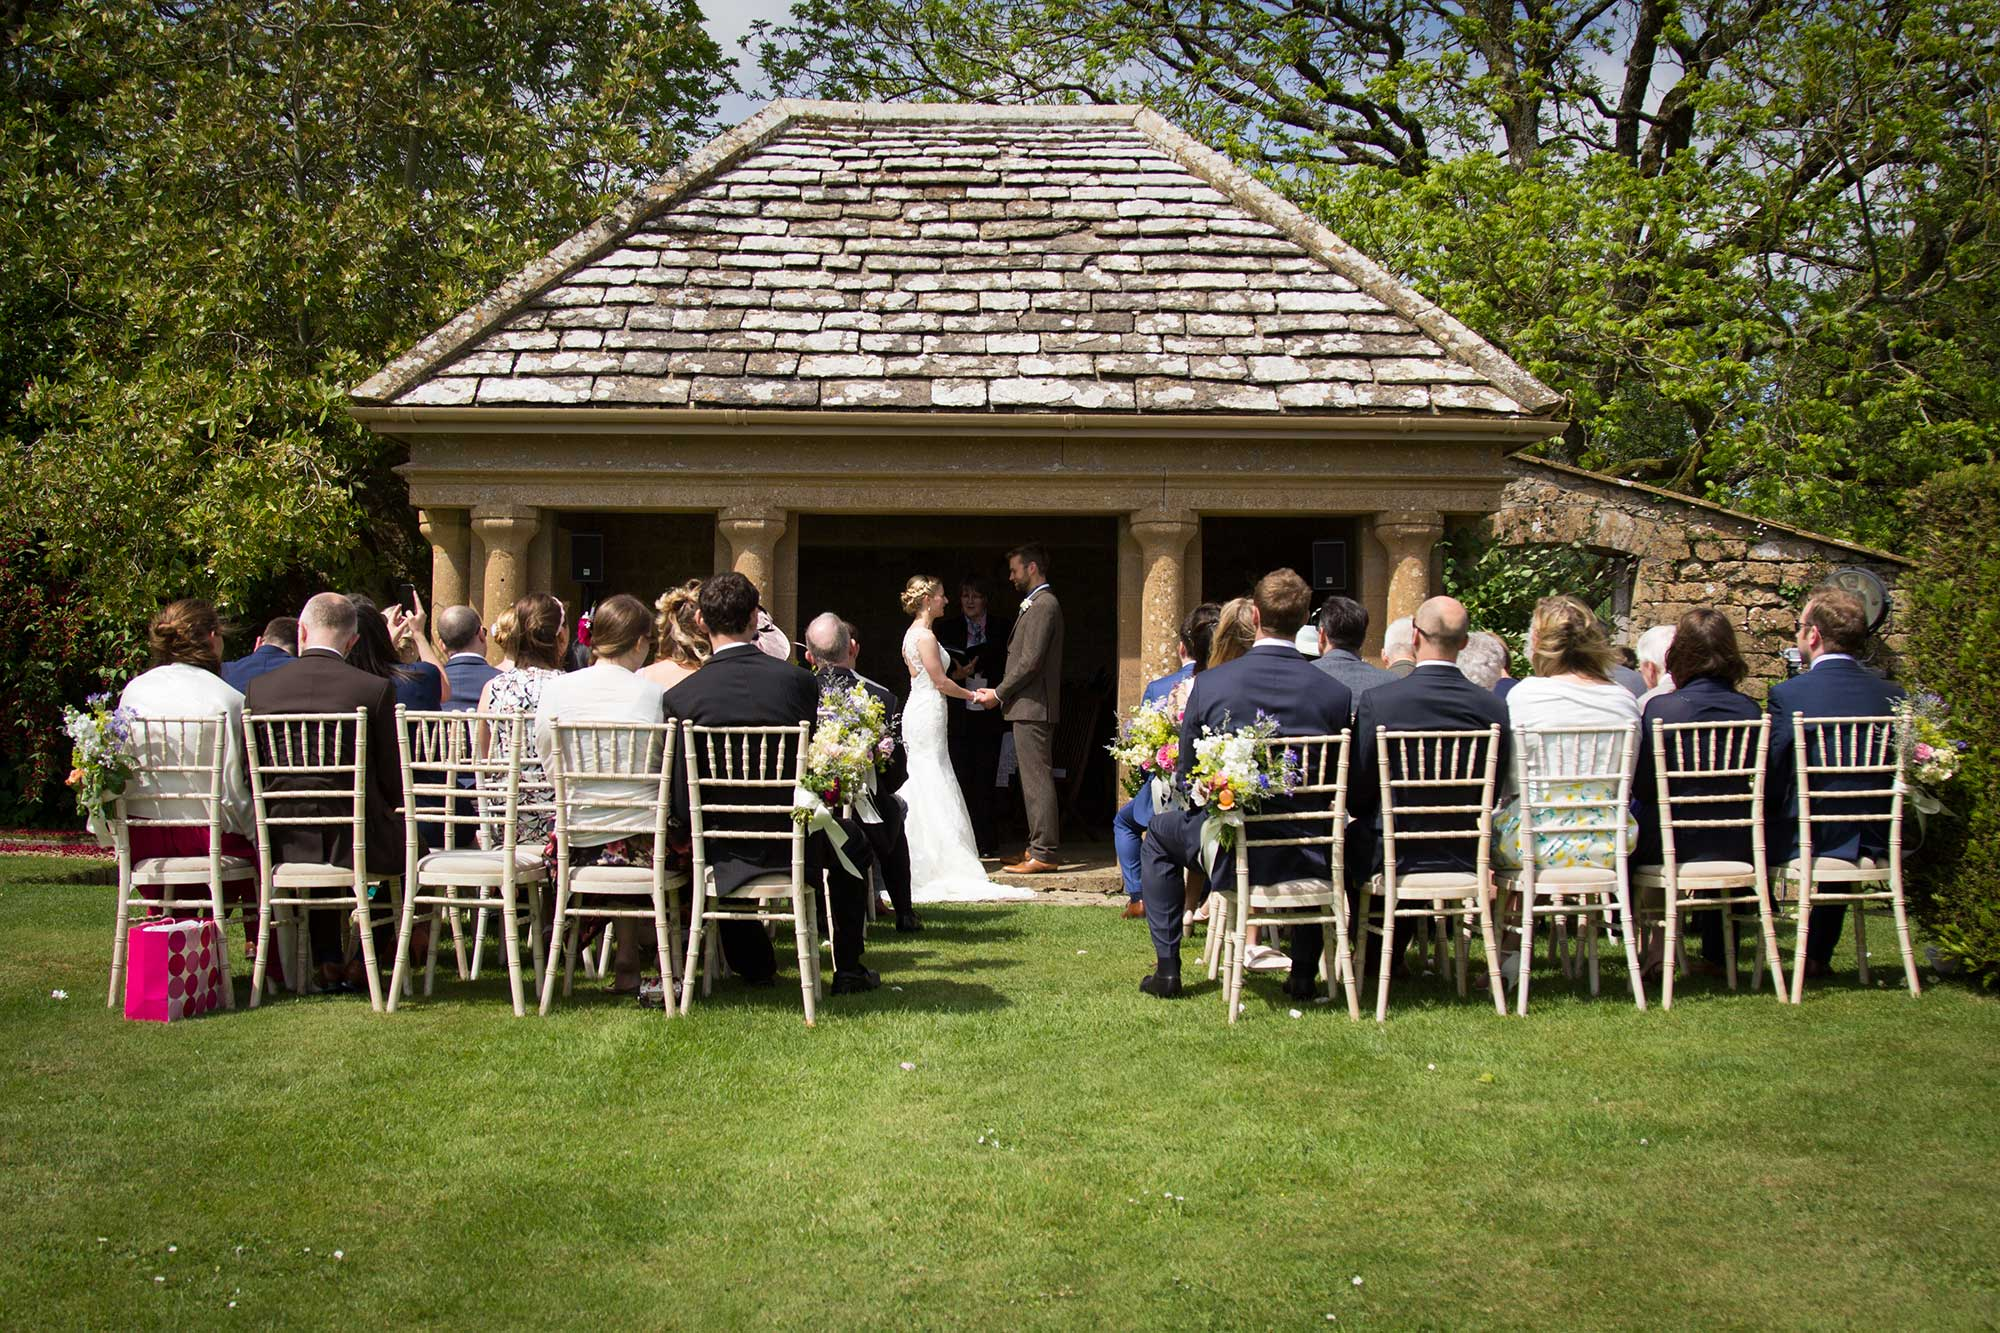 The Croquet Pavilion at Mapperton - Dorset Wedding Venue